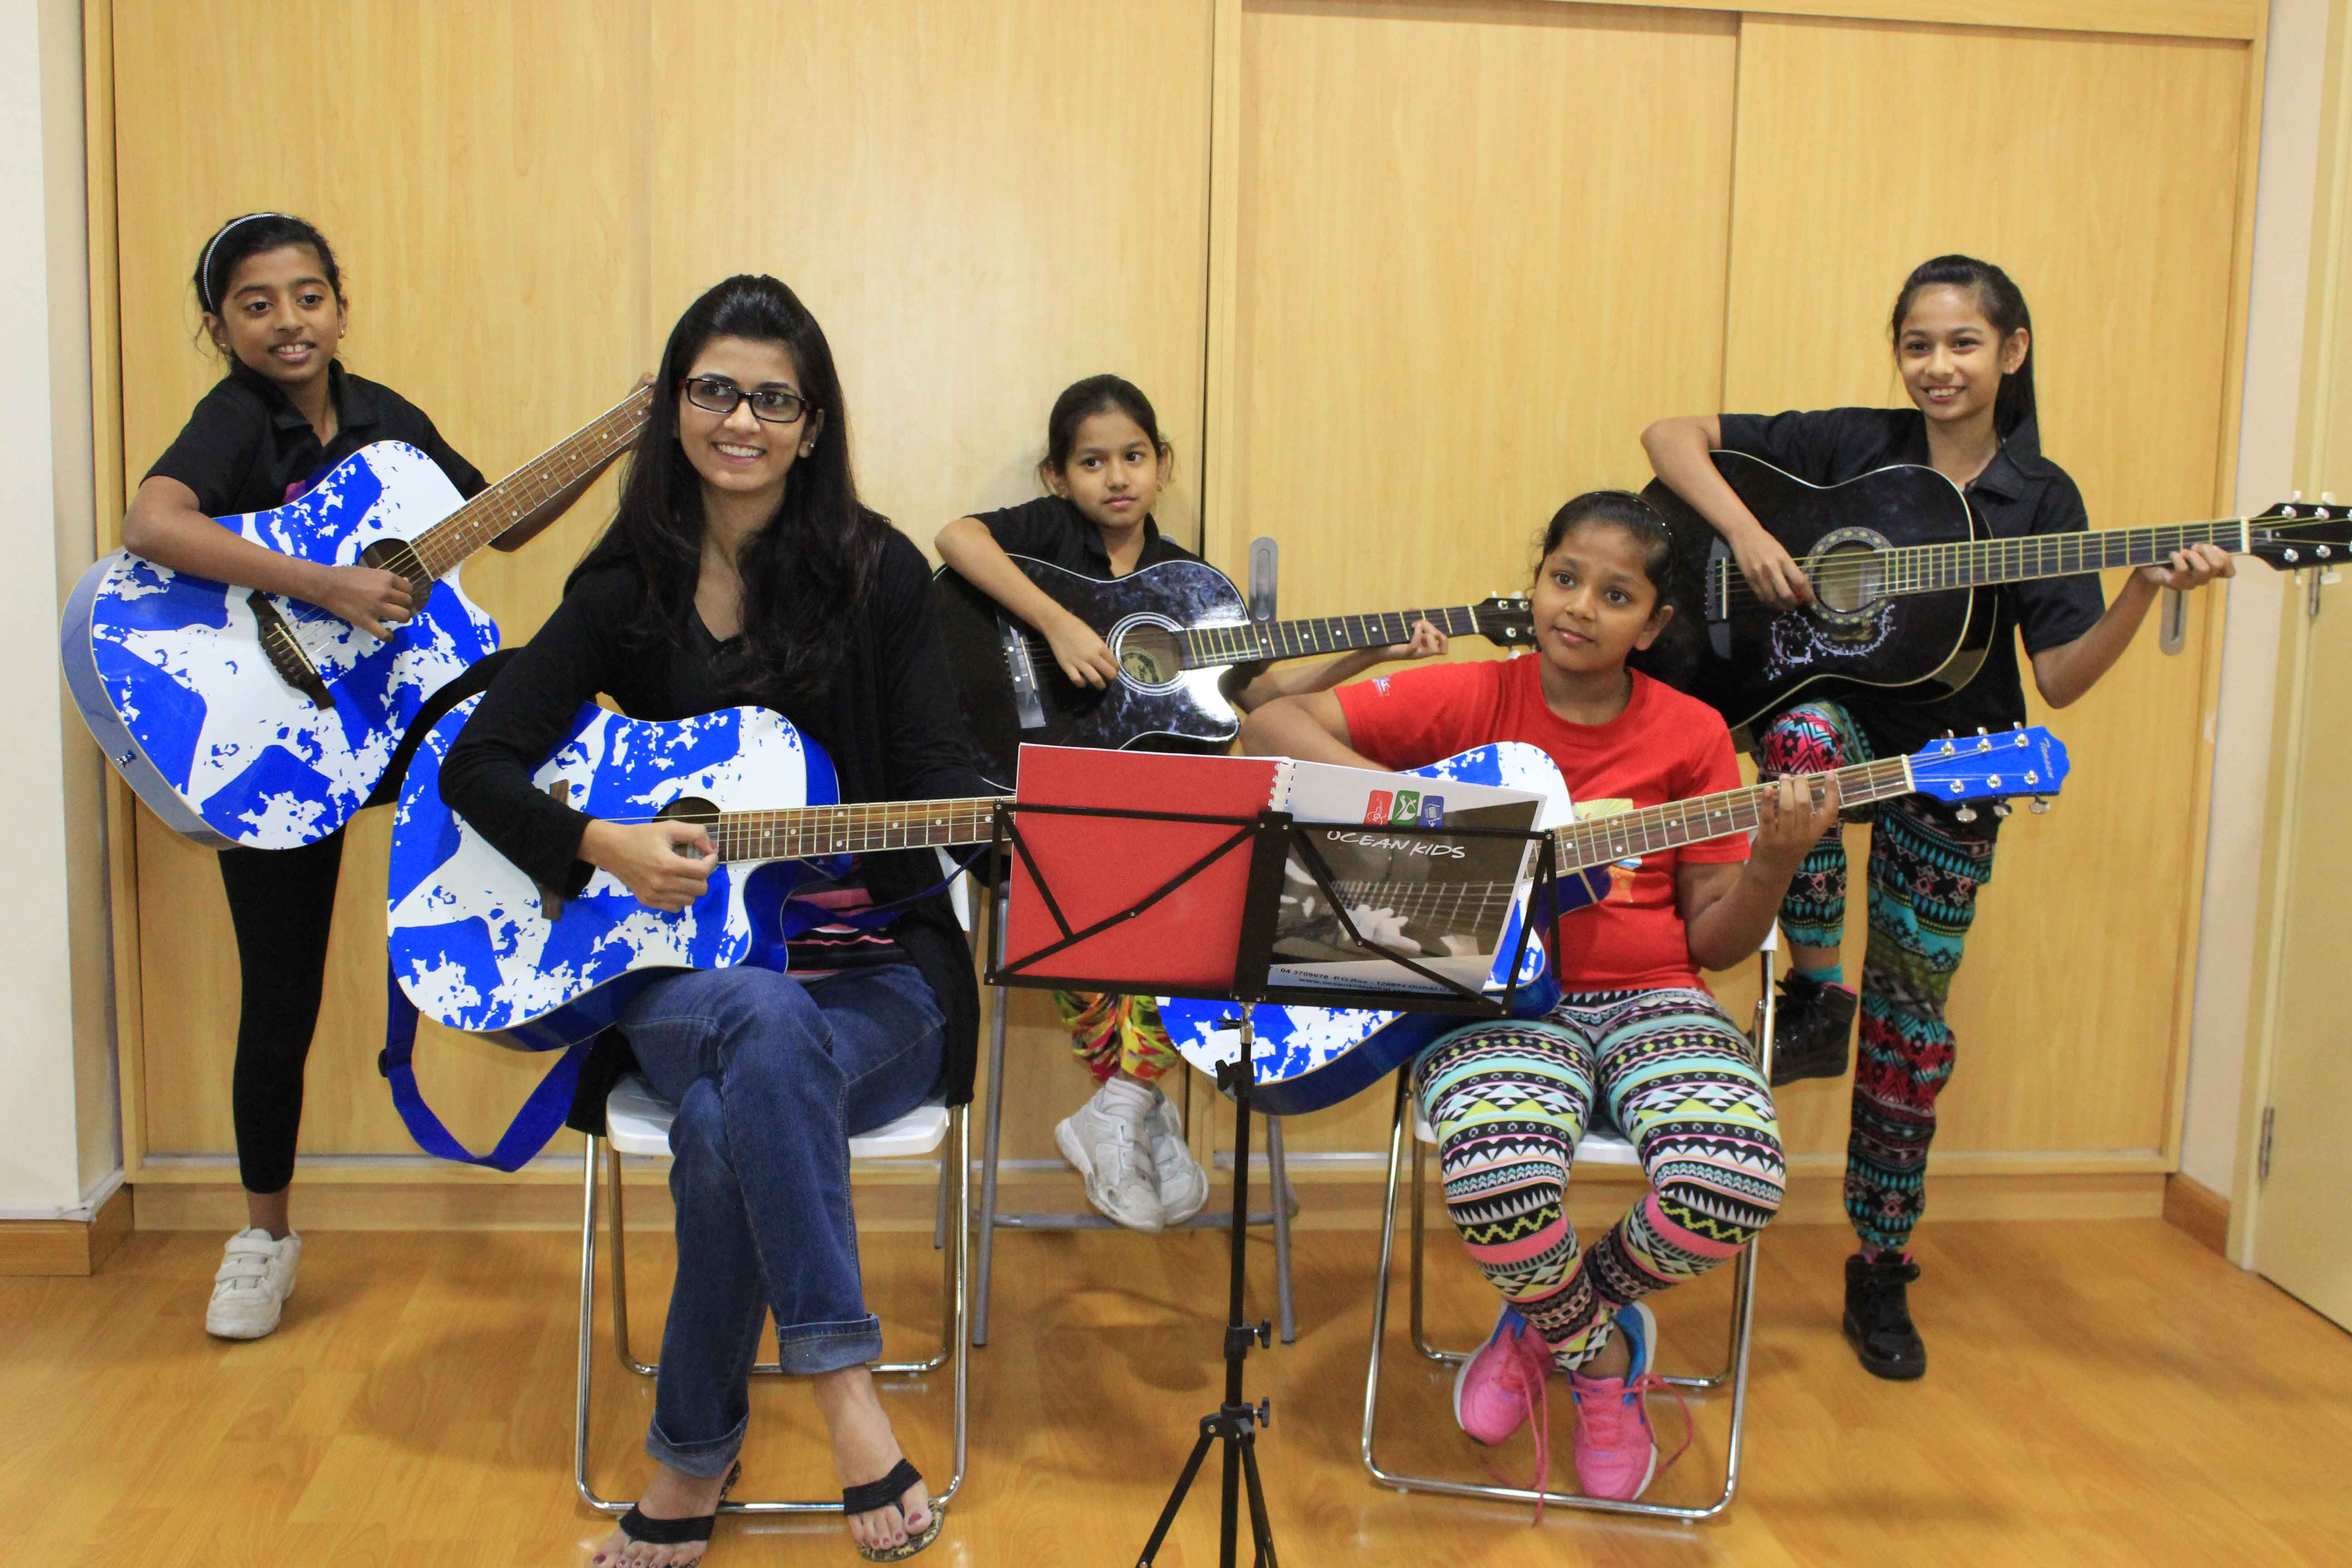 Dubai Guitar classes